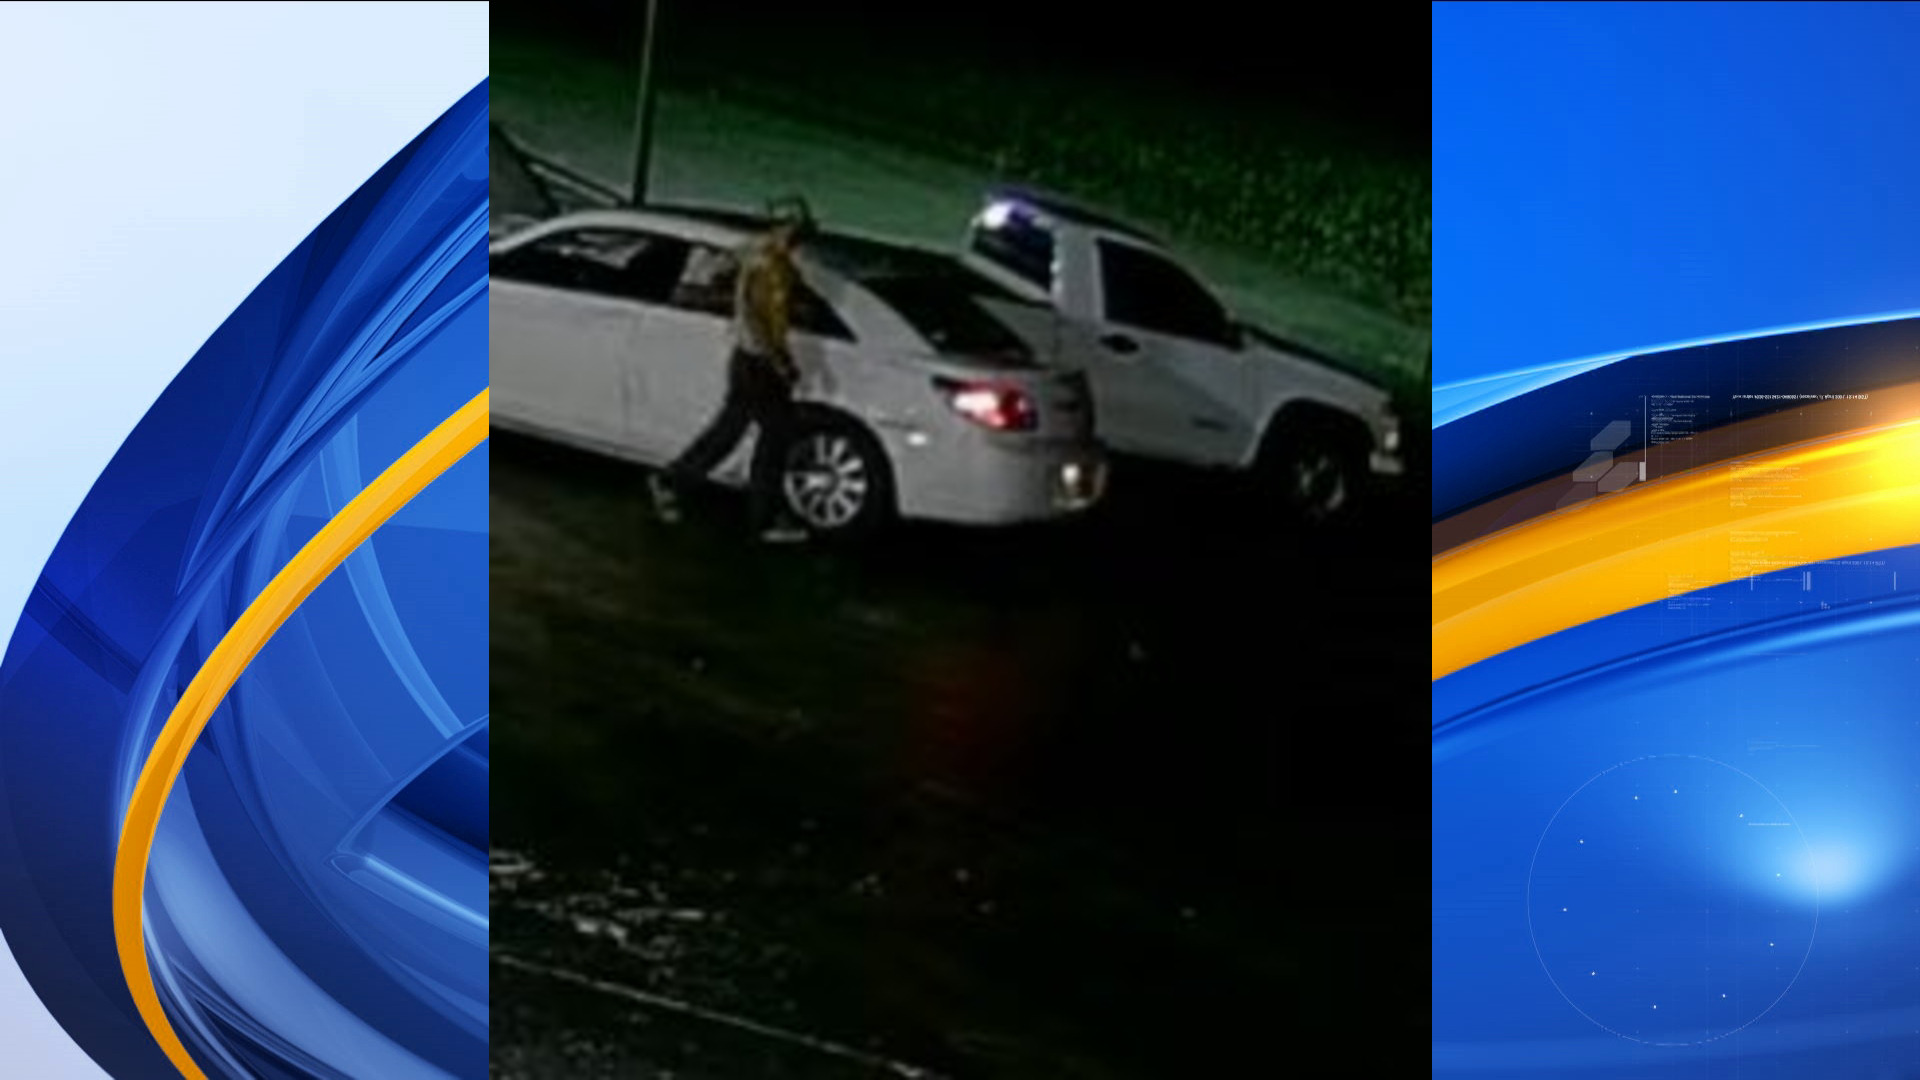 The Sheriff's Office said while the person was spotted cutting a catalytic converter off a Chevrolet S-10 pickup at the Refuge Church campus in Harvest, investigators believe the person also committed several other thefts across the county.